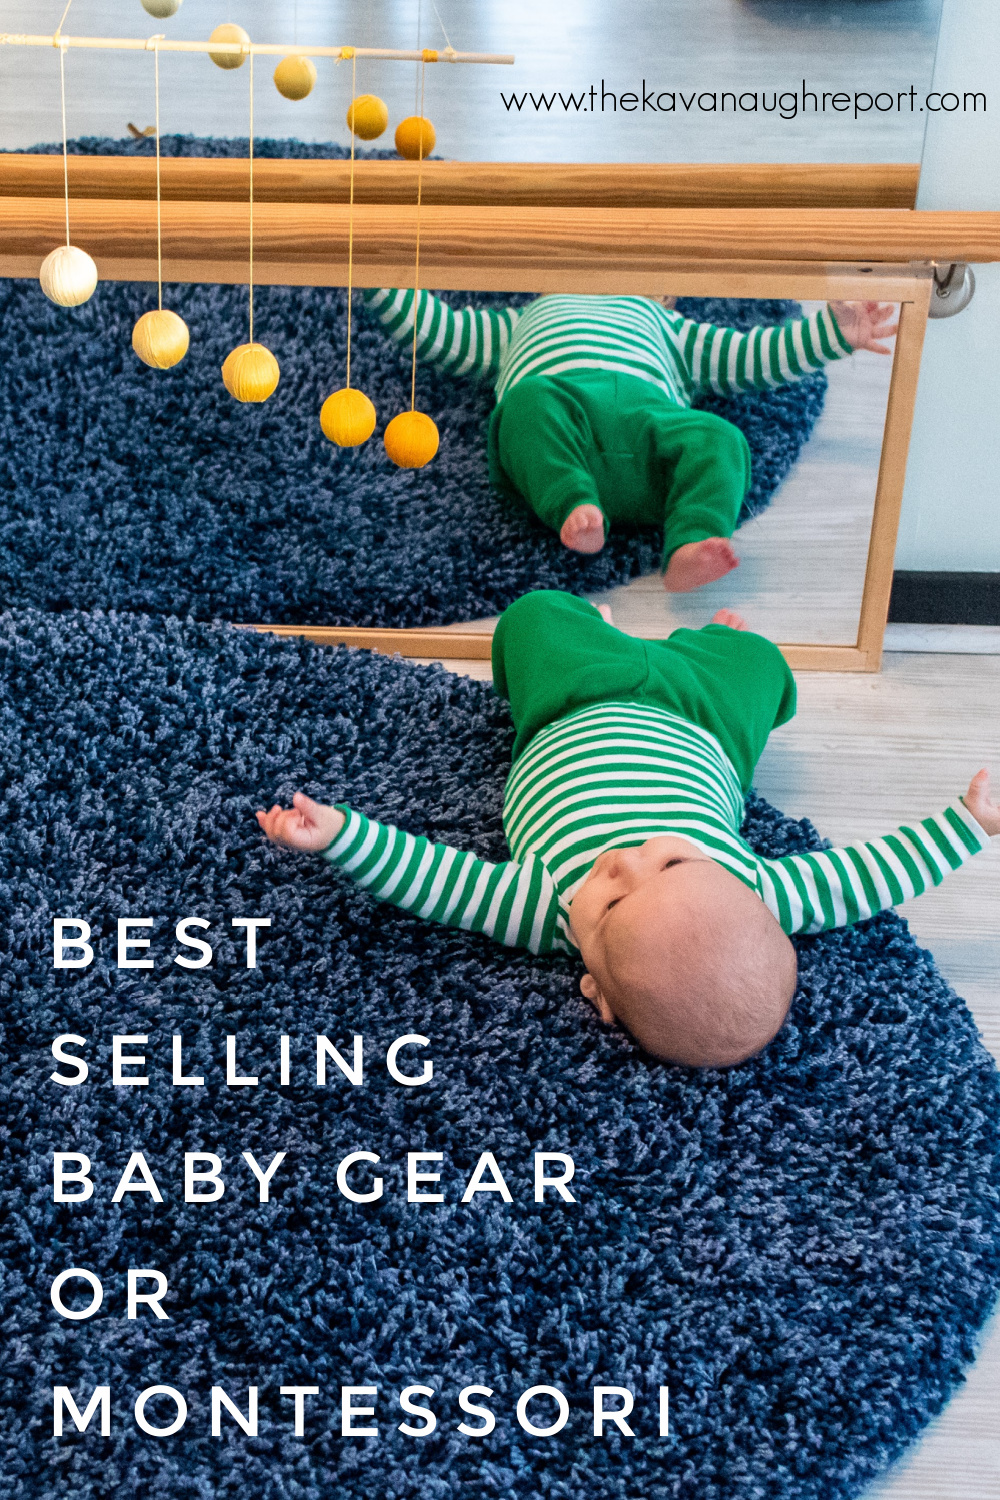 """Montessori baby spaces and activities that can replace popular """"best selling"""" baby toys and gear. Simple, natural experiences for babies are better."""